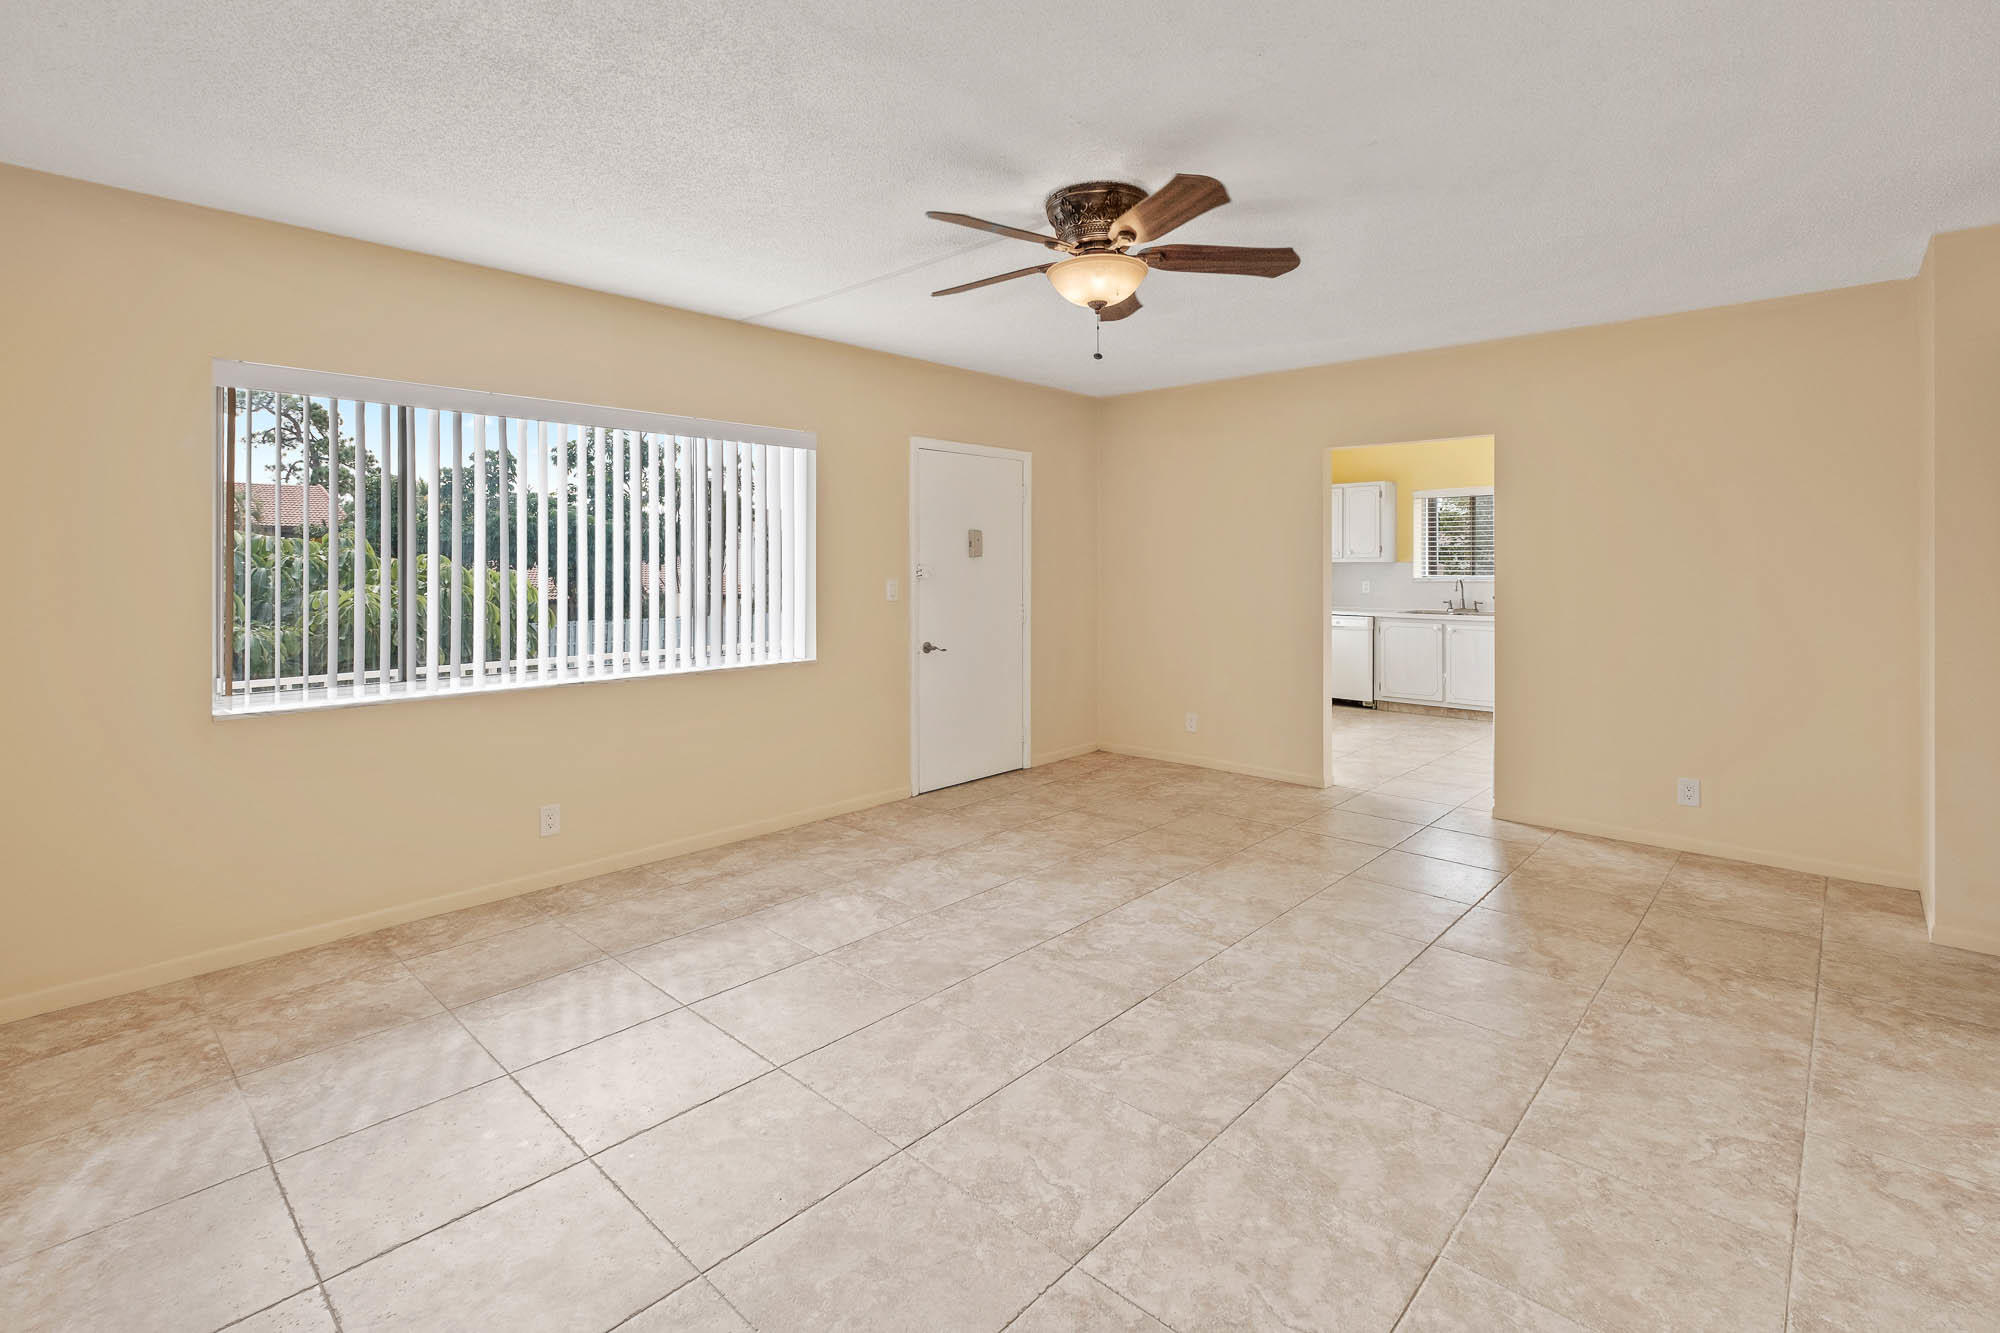 6289 Lear Drive, Lake Worth, Florida 33462, 3 Bedrooms Bedrooms, ,2 BathroomsBathrooms,Condo/Coop,For Sale,Lear,4,RX-10486466